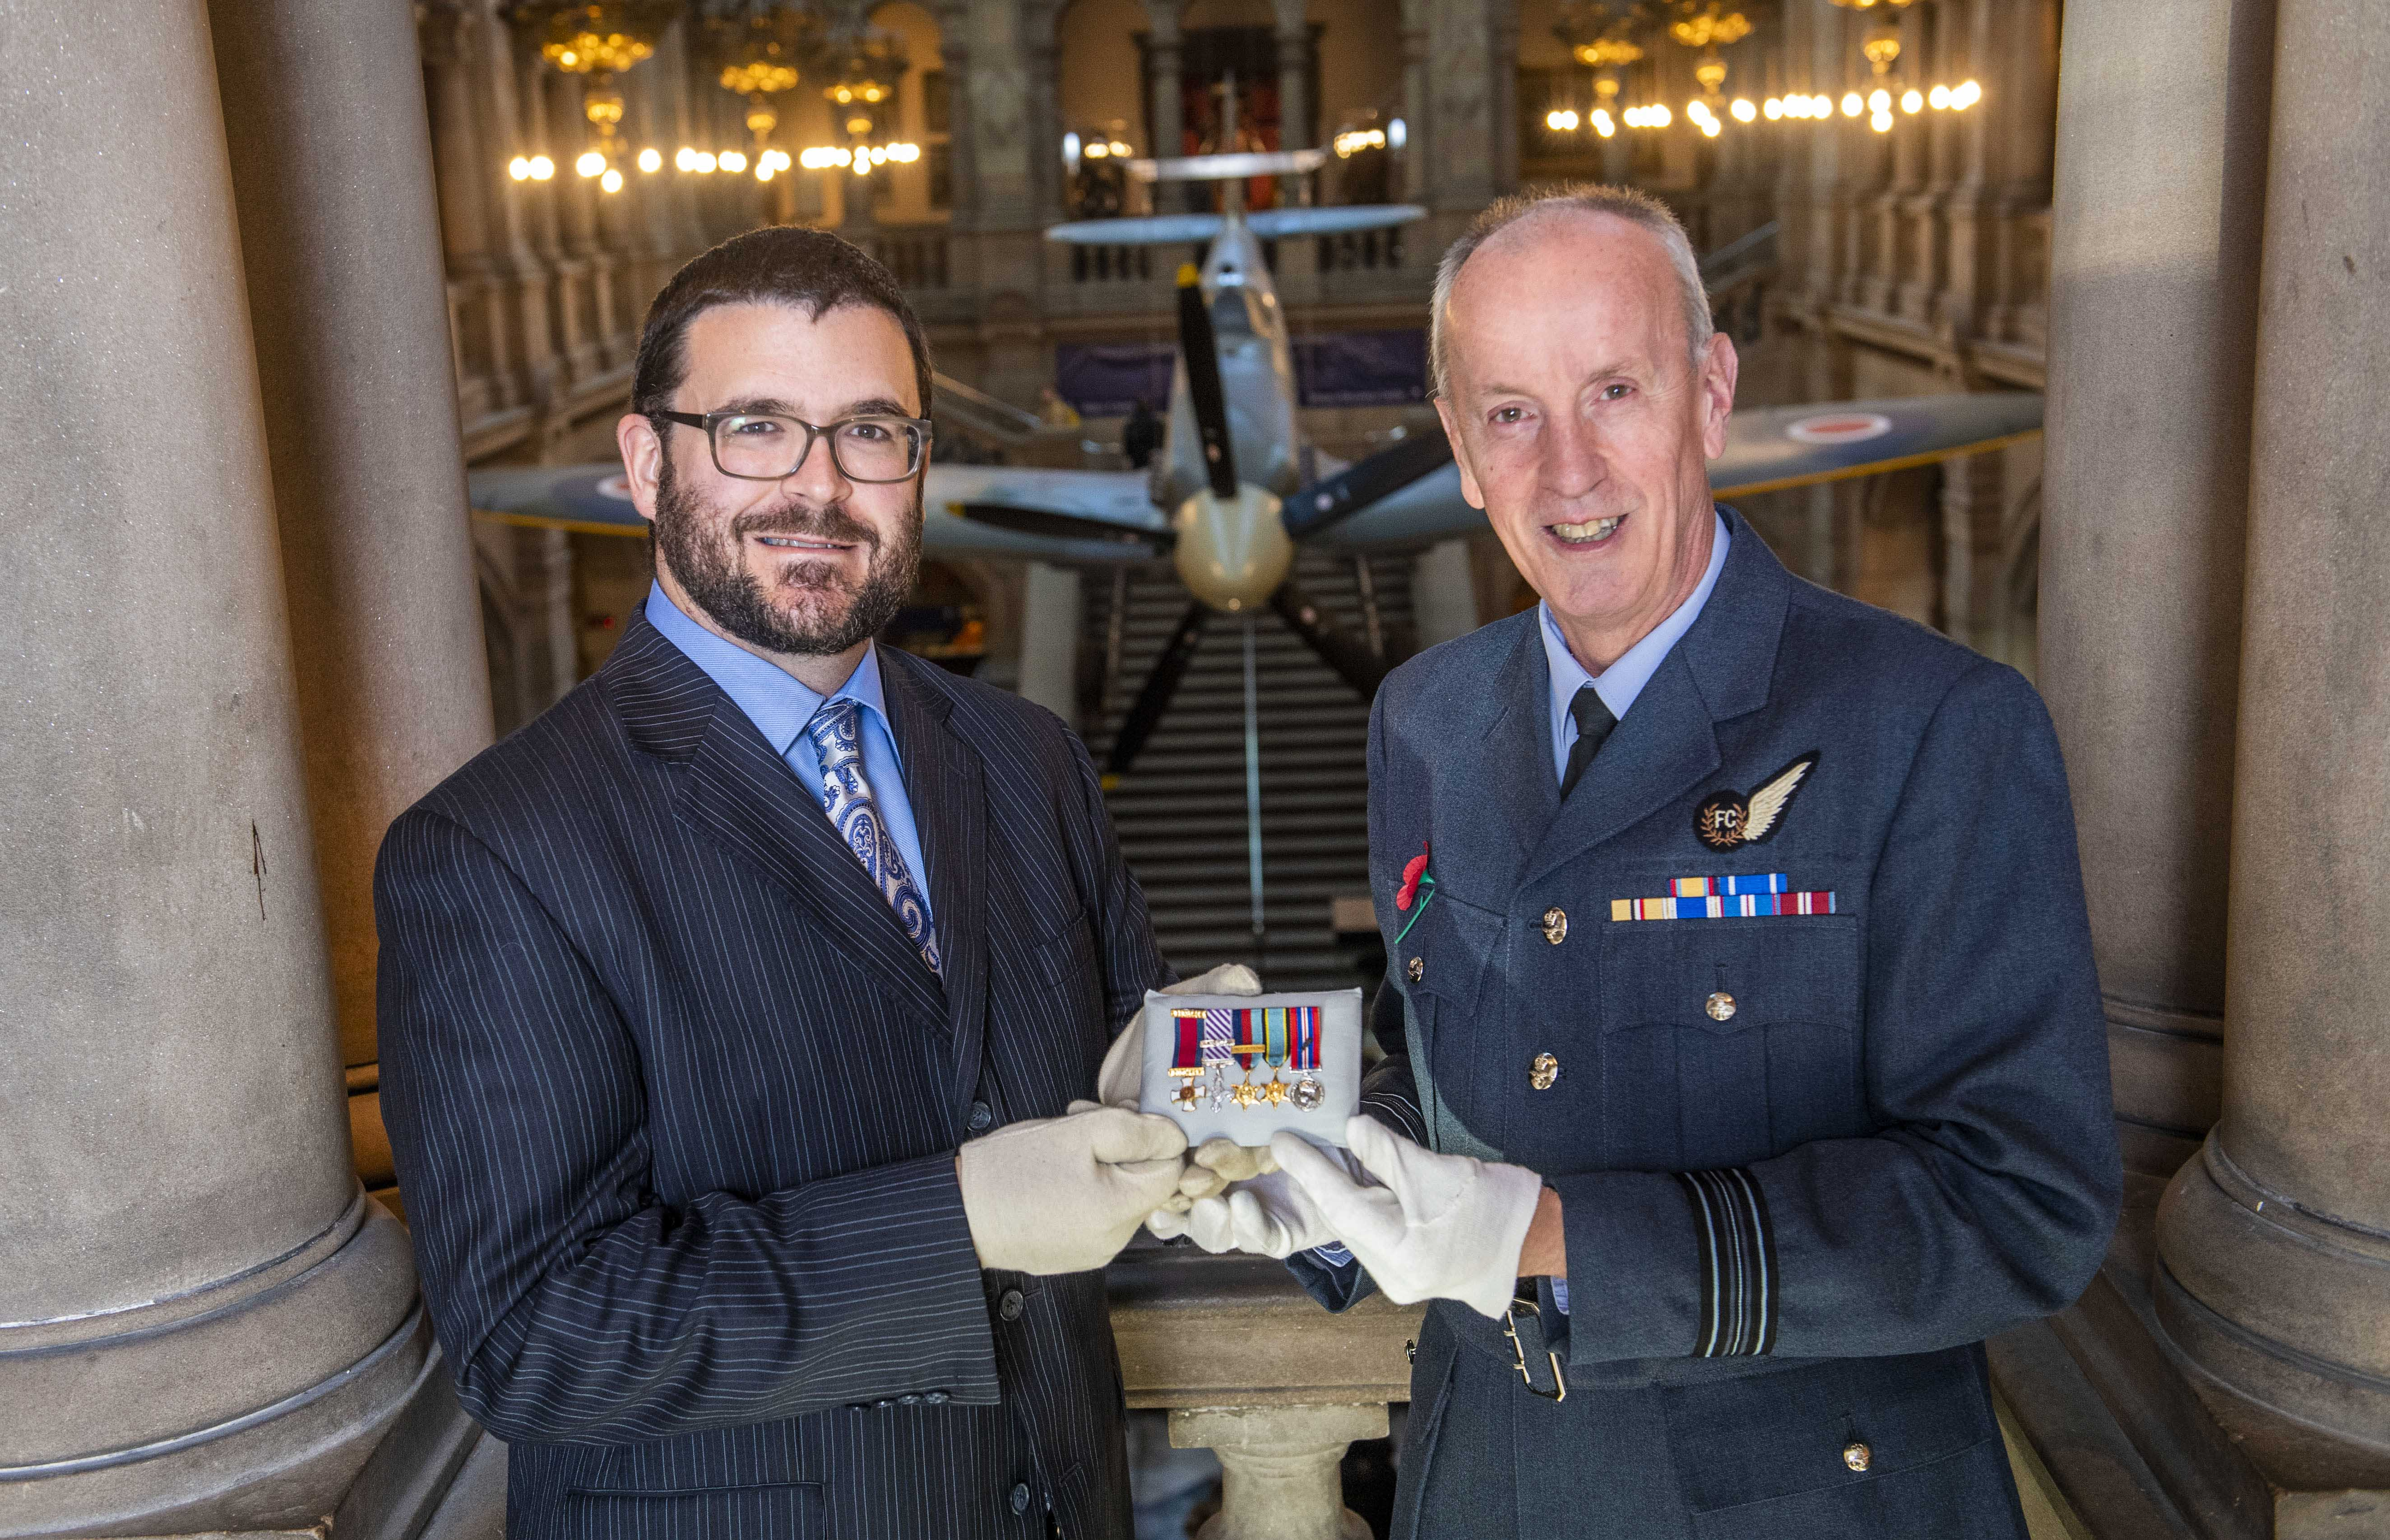 Glasgow Museums curator John Messner (L) and Squadron Leader  Archie McCallum of the 602 City of Glasgow Squadron unveil the new display